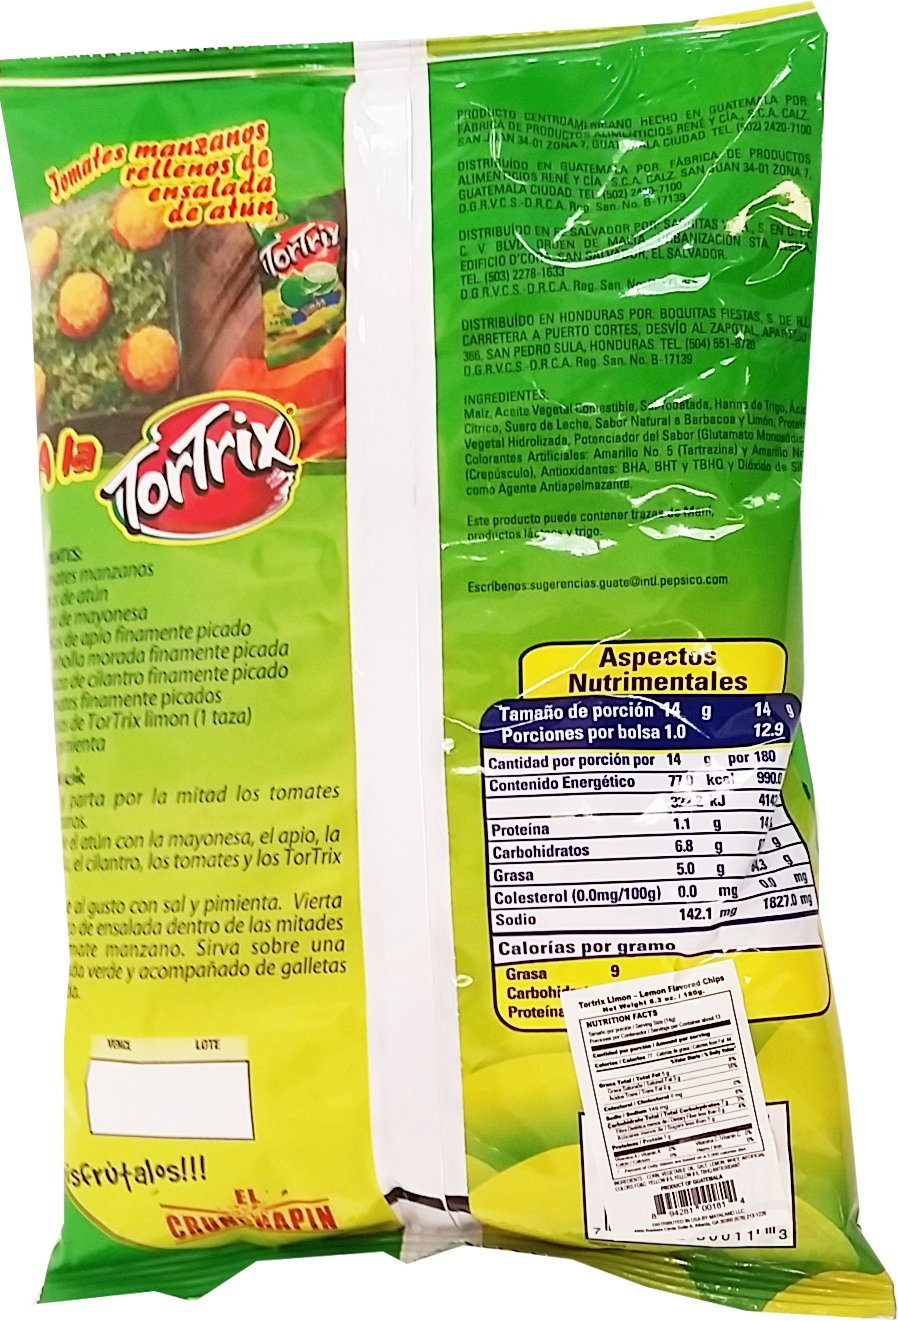 Amazon.com : Tortrix Lemon 6.35 oz - Limon Paquete Familiar (Pack of 8) : Grocery & Gourmet Food